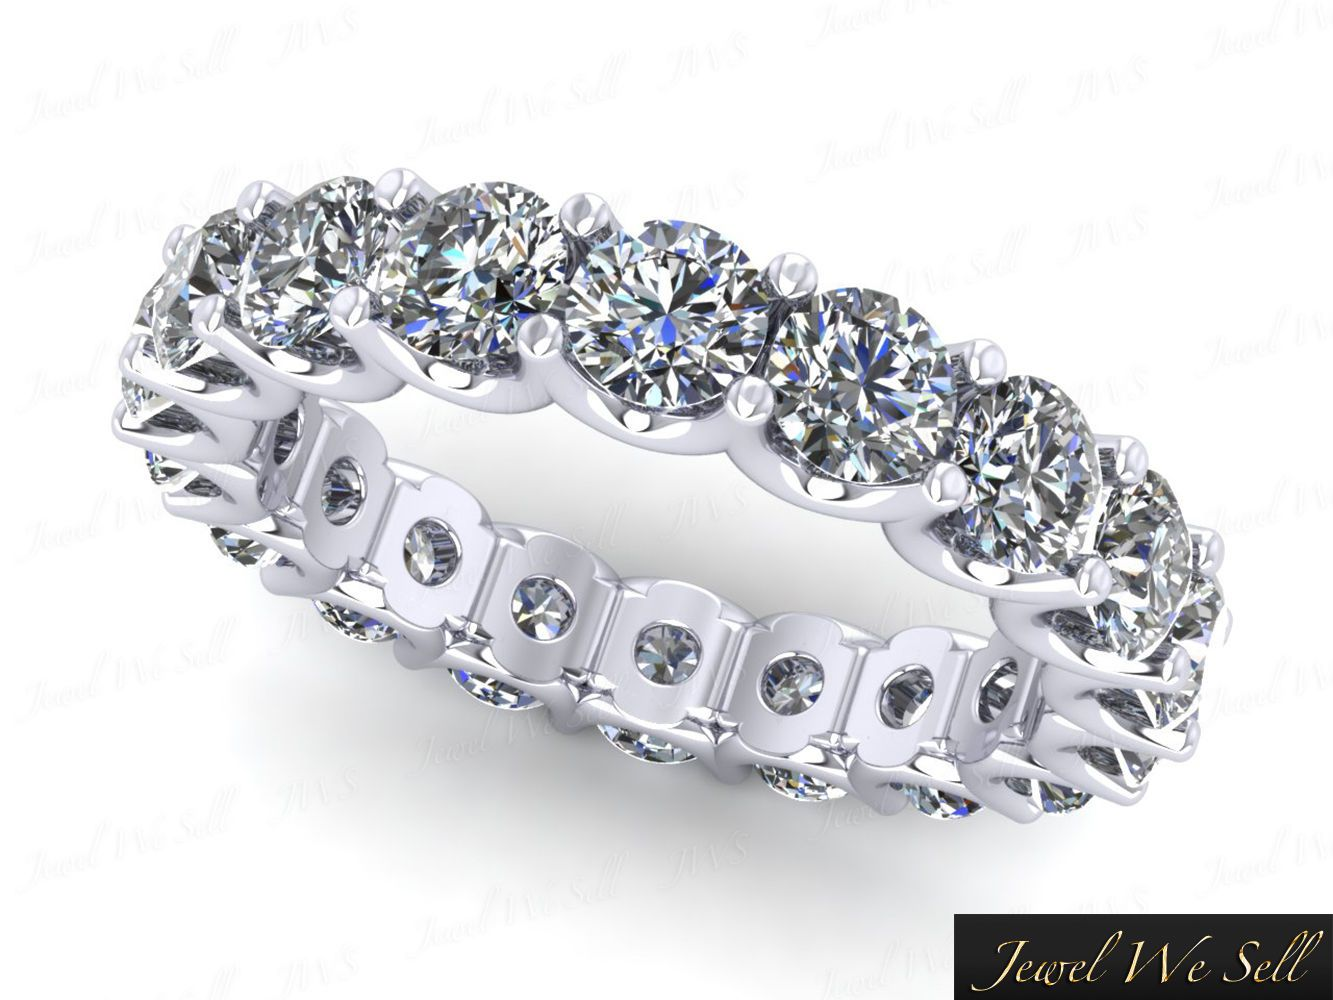 4 50ct Round Diamond Shared U G Eternity Band Ring 950 Platinum Si1 Common Ping Pinterest Bands And